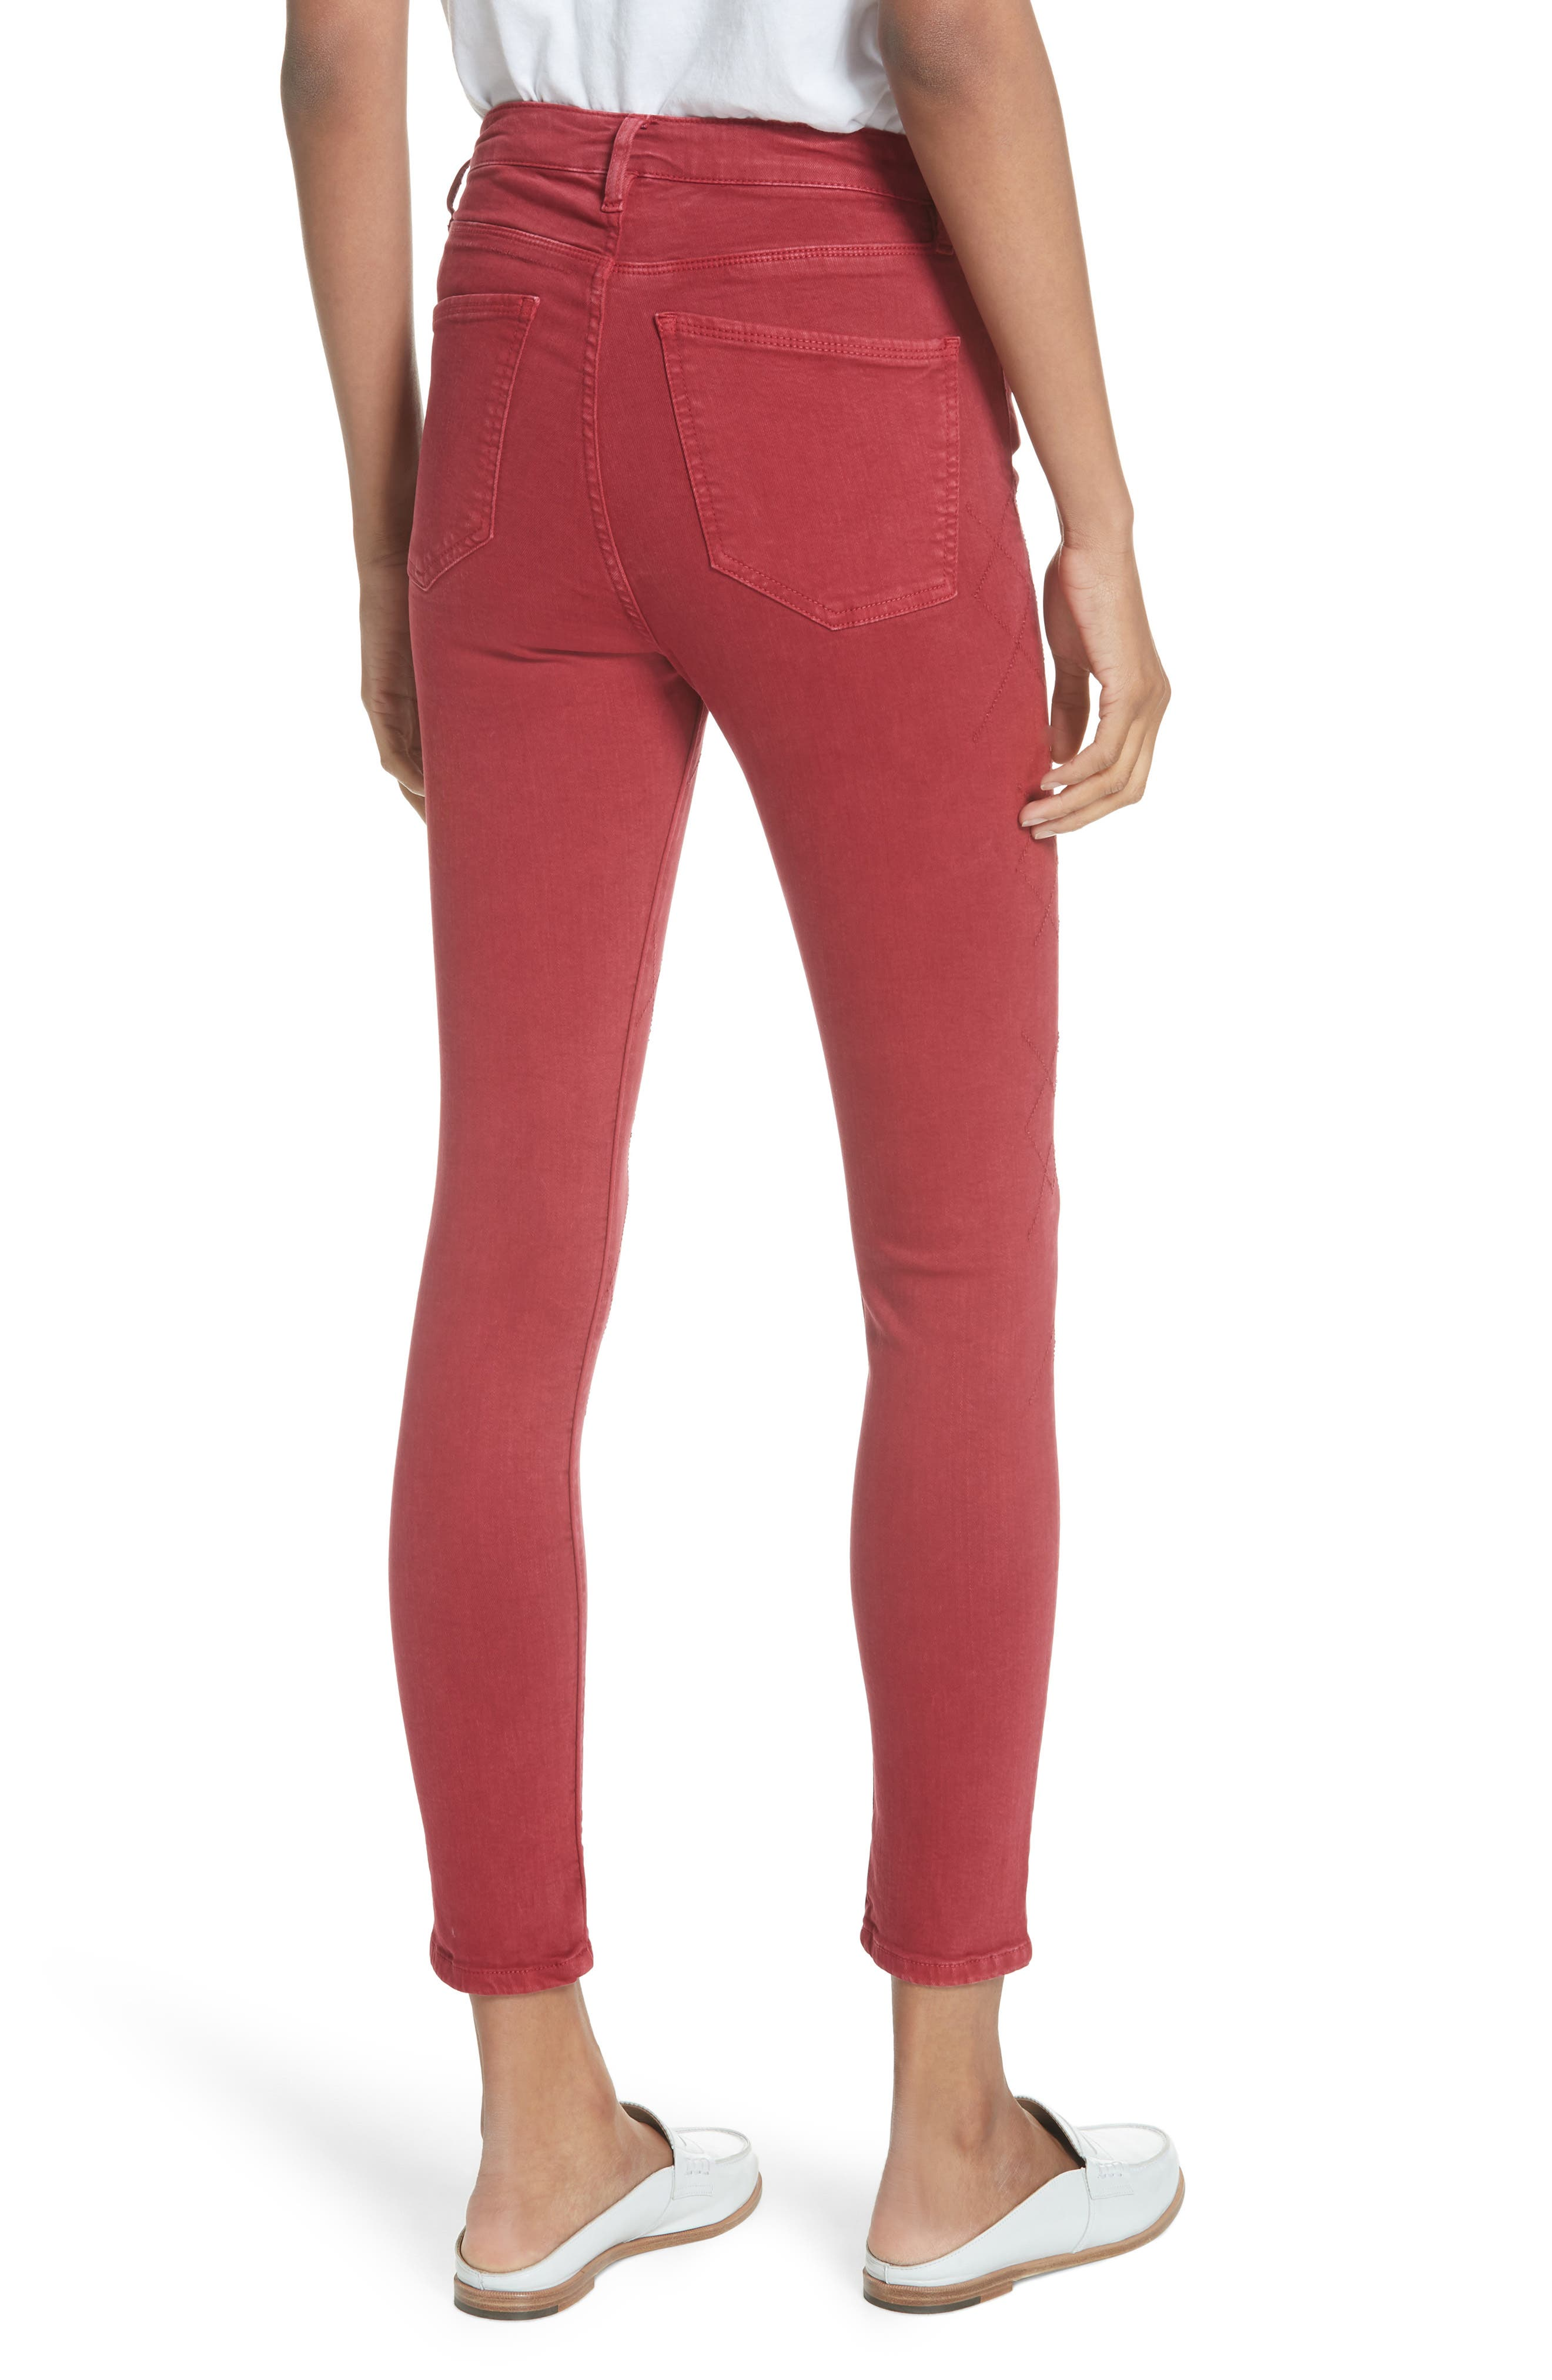 Rolling Old Reina Lattice Stitch Skinny Jeans,                             Alternate thumbnail 2, color,                             Framboise